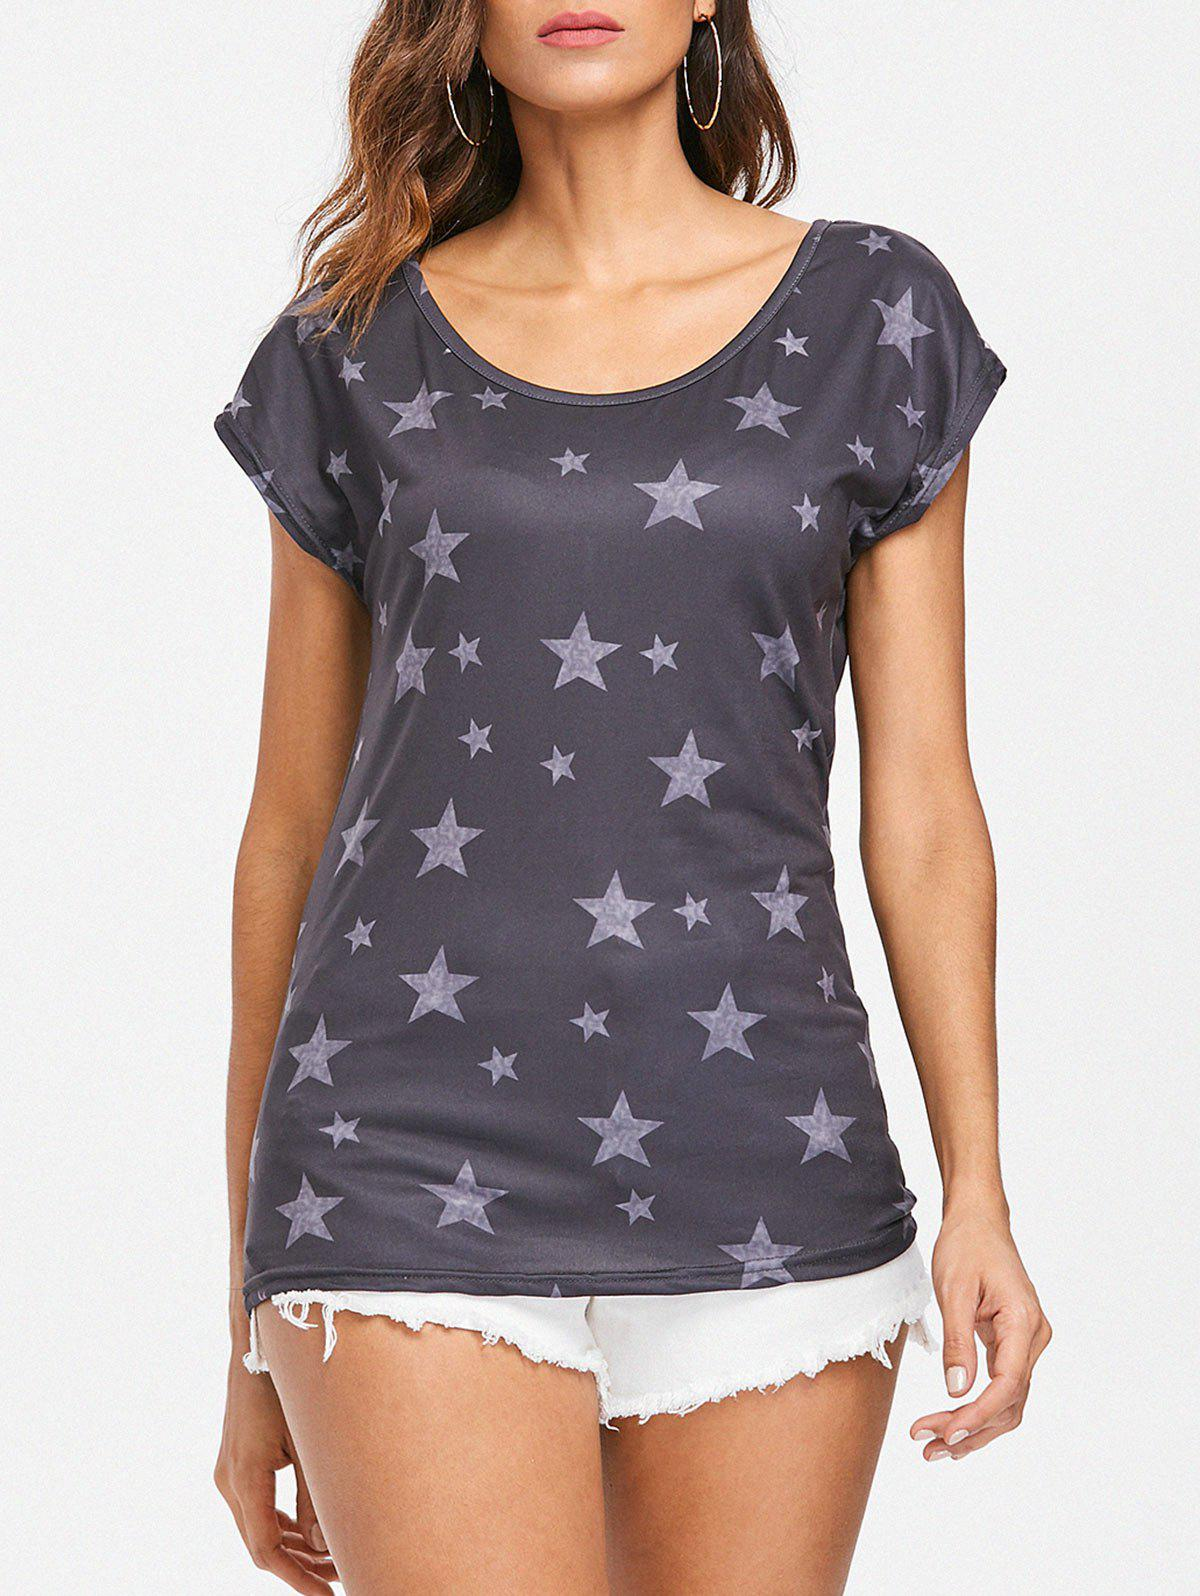 Chic Star Print Scoop Neck T-shirt